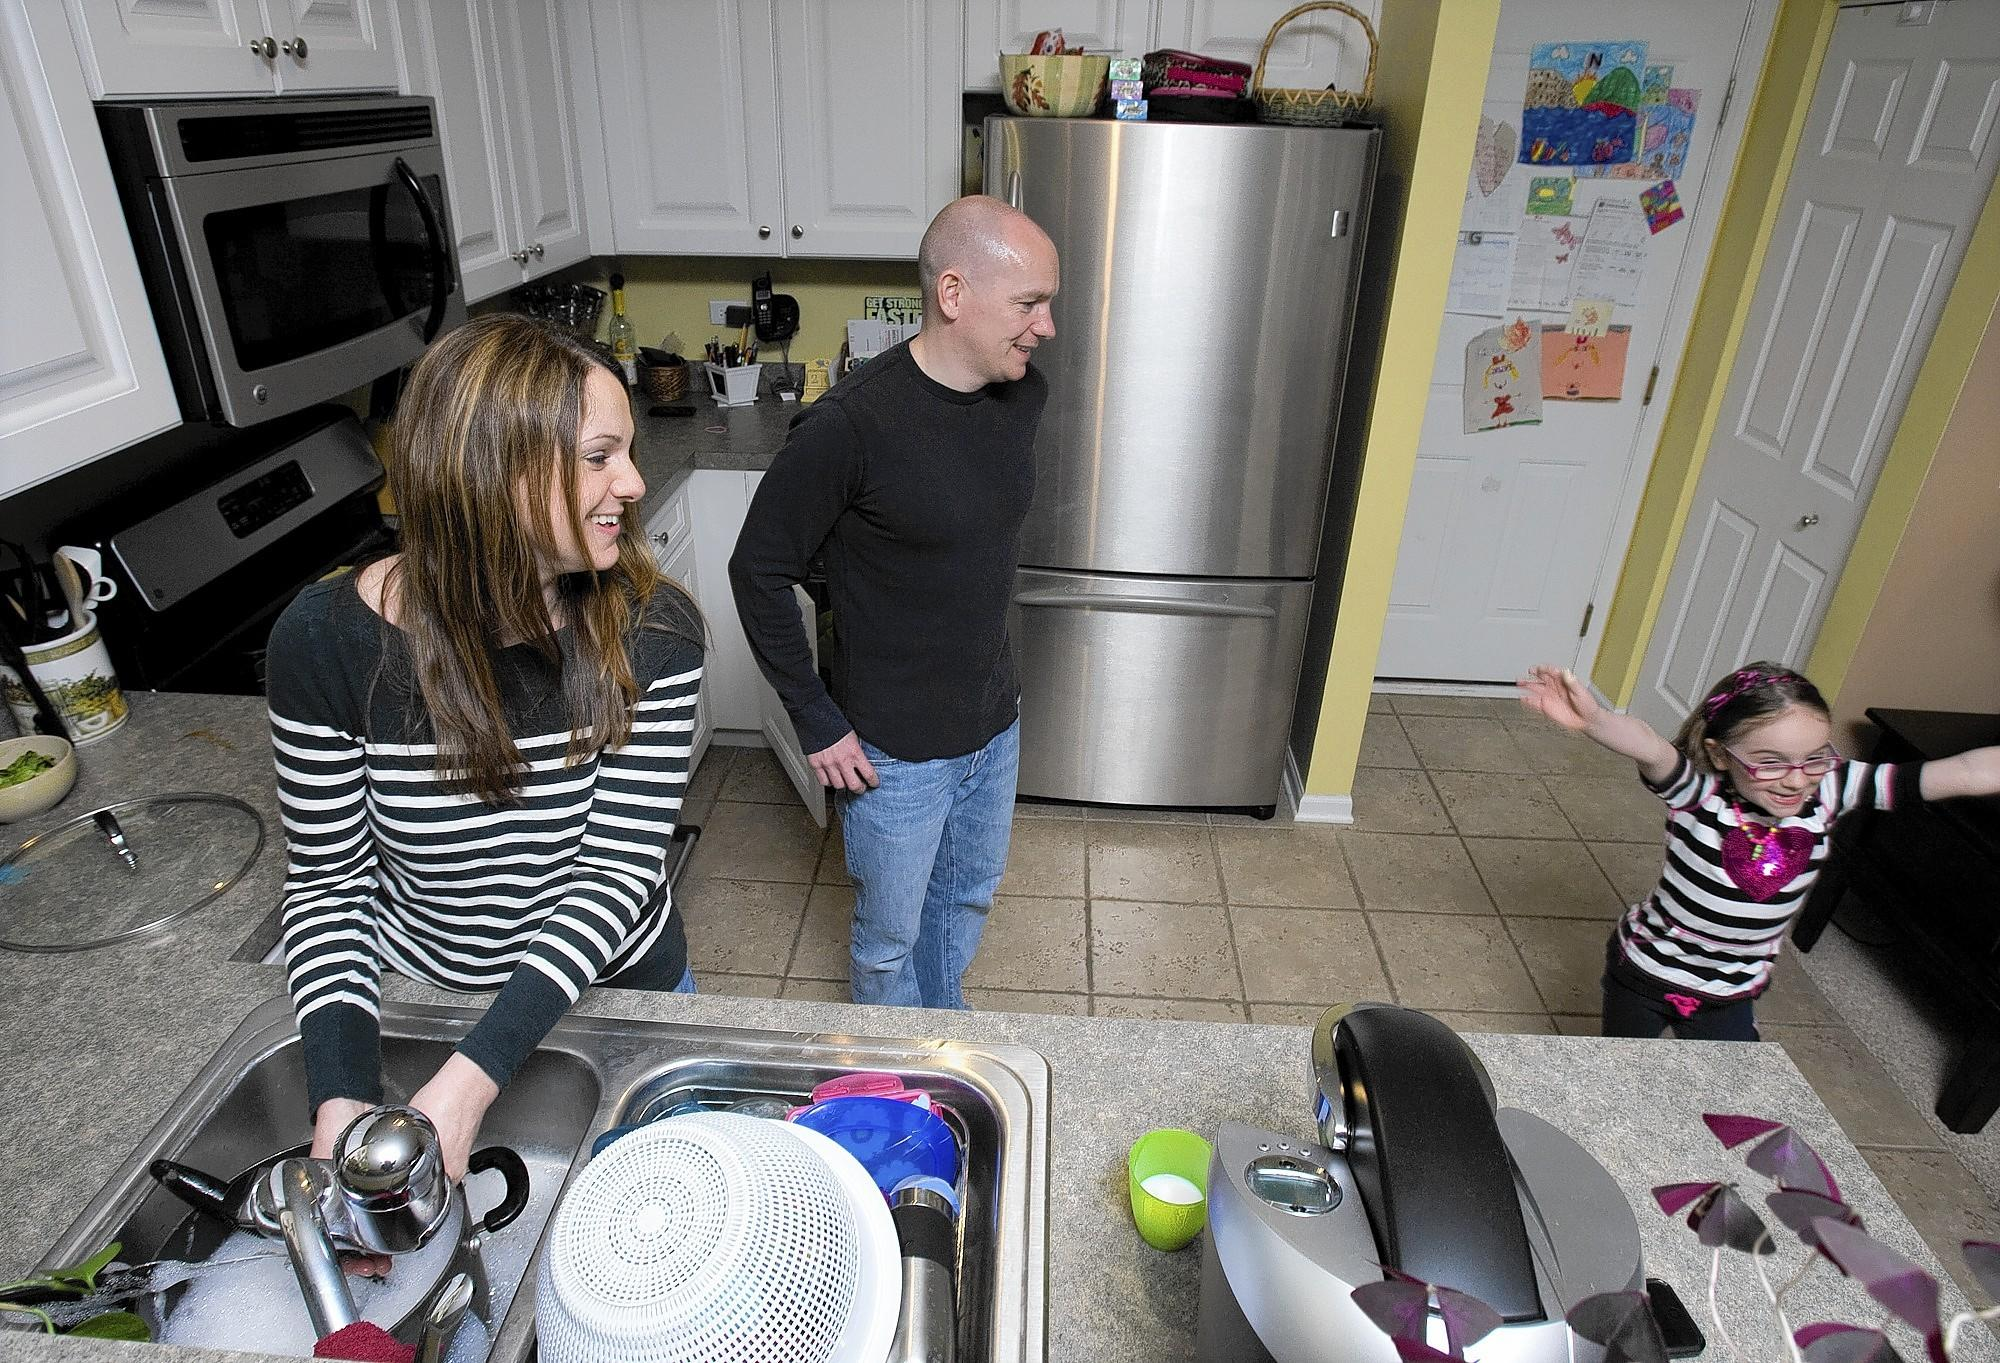 Scott and Caroline Schmauderer, with daughter Haley, hoped to move out of their town house in Lake in the Hills after their family grew, but they are underwater on their mortgage and don't qualify for a loan modification.